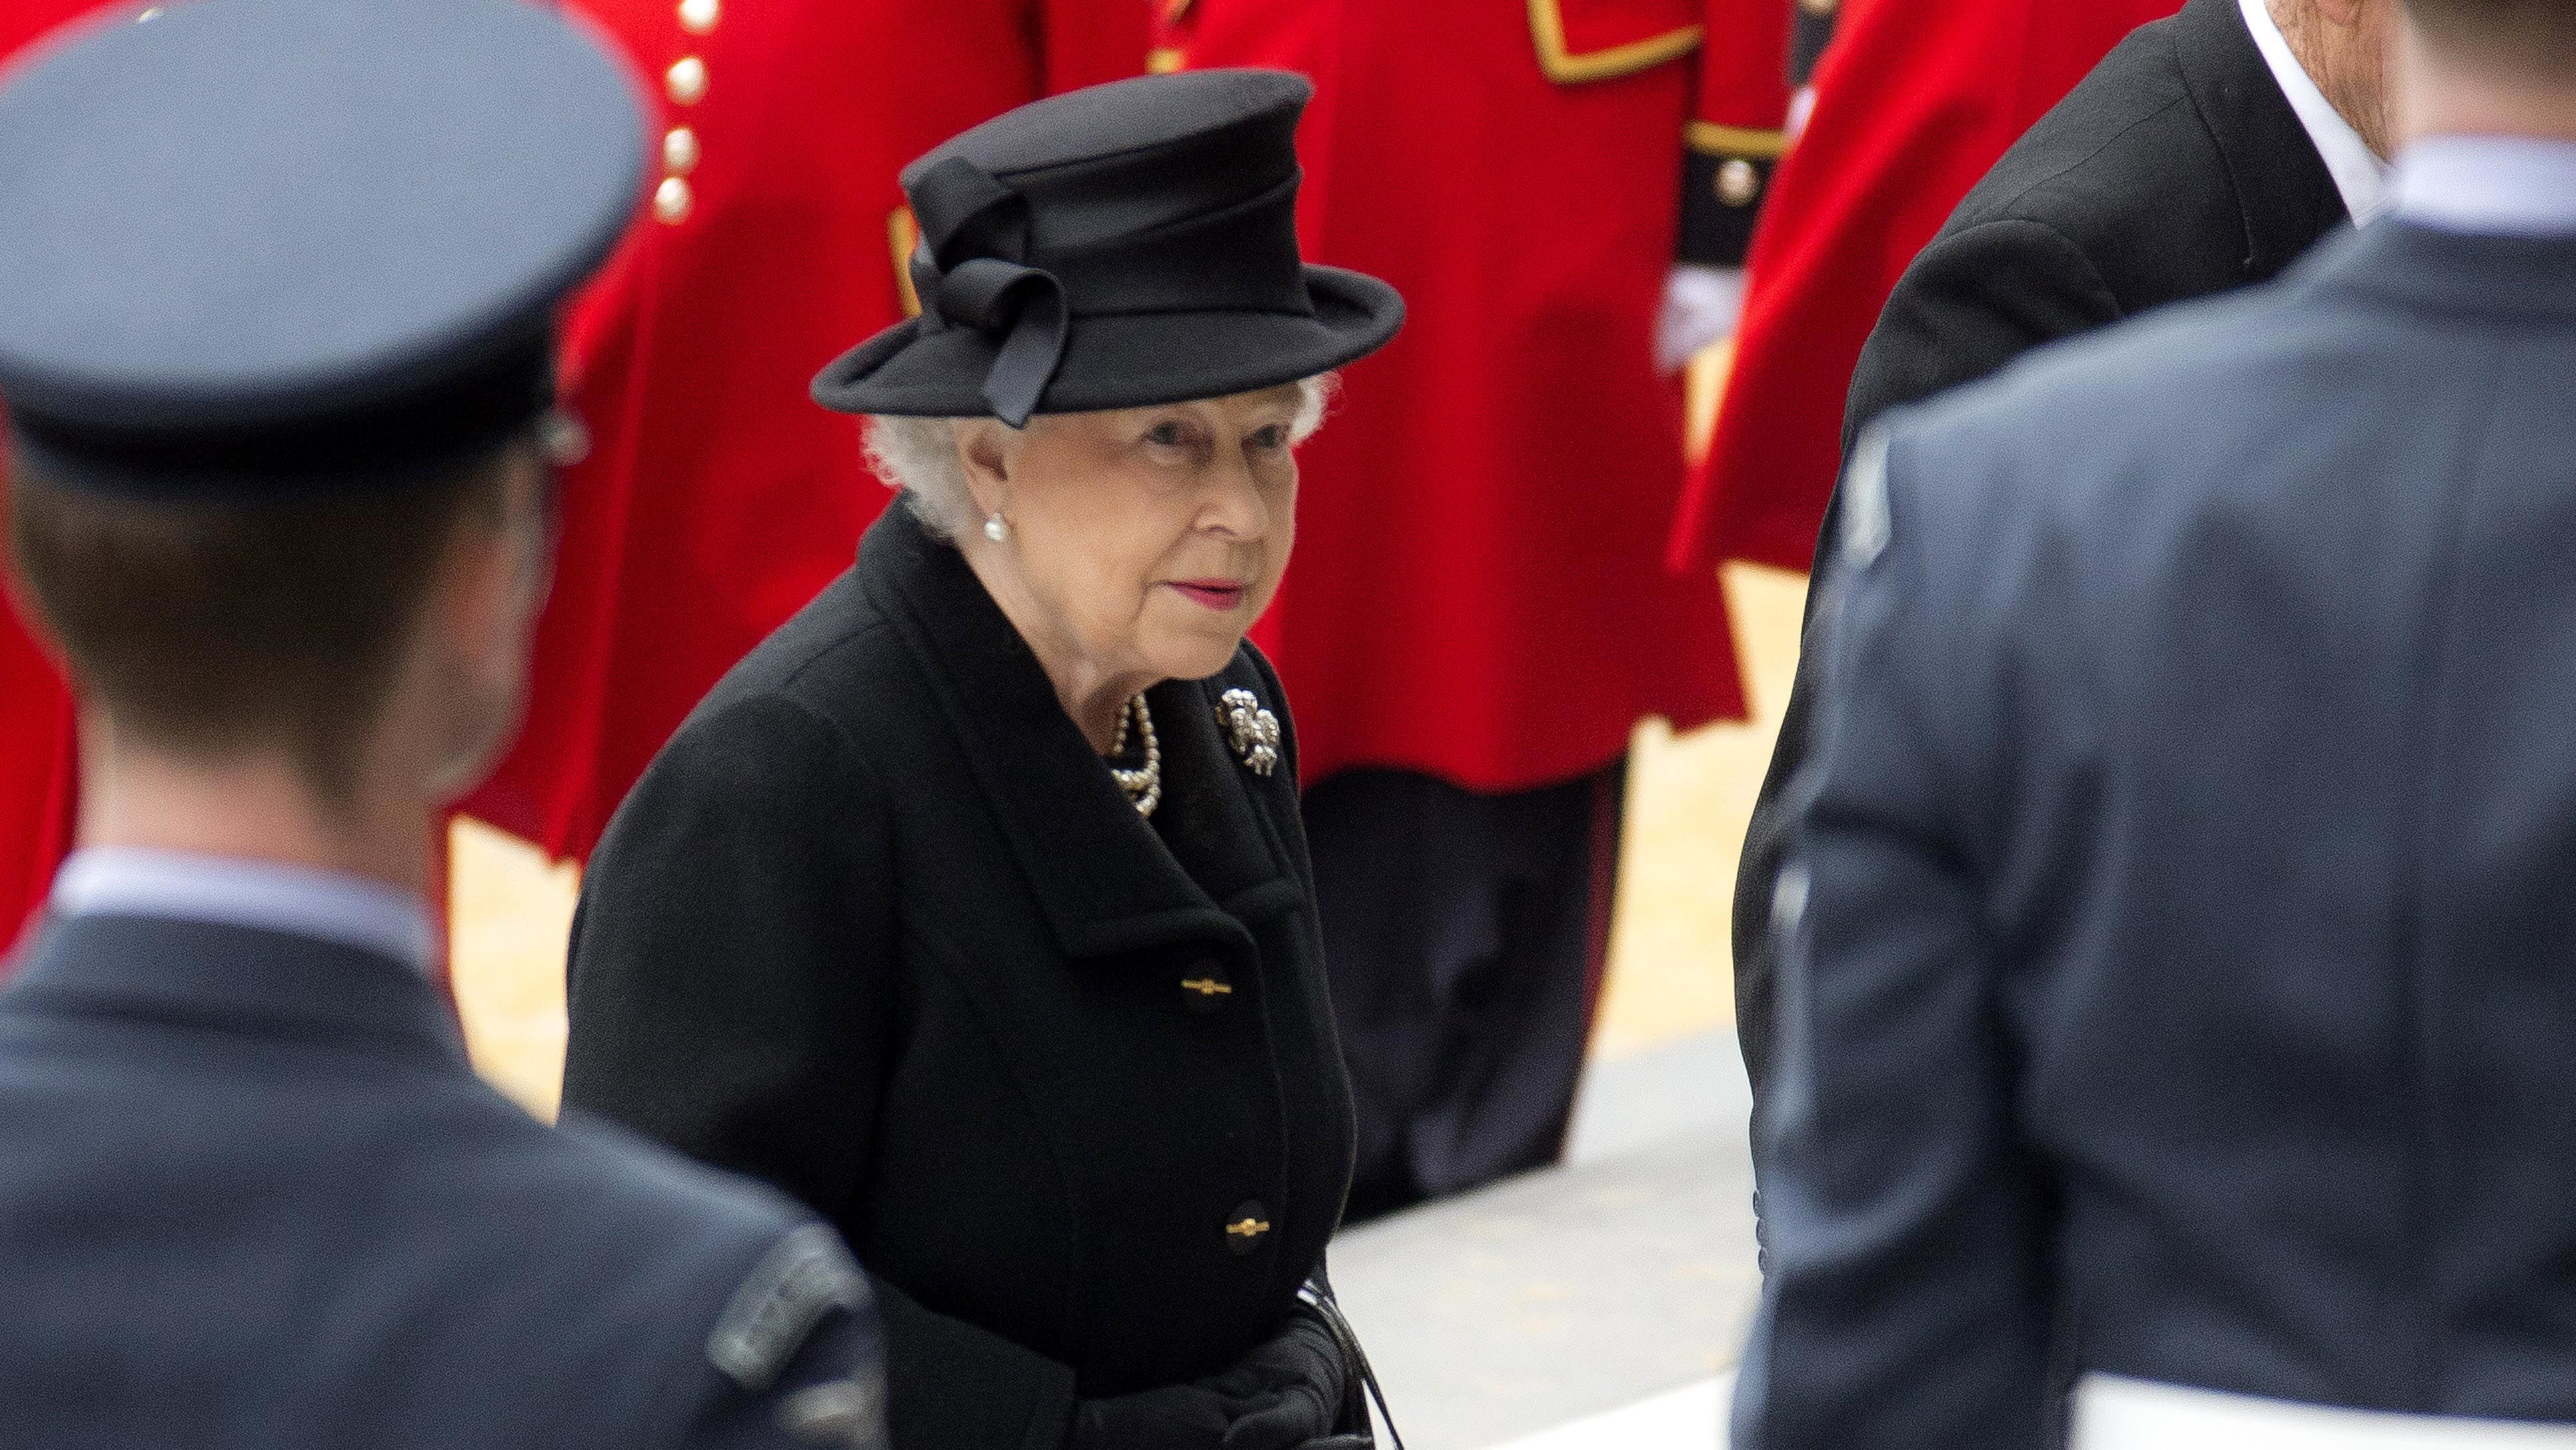 The Reason Why Members of the Royal Family Must Always Travel With One All-Black Outfit